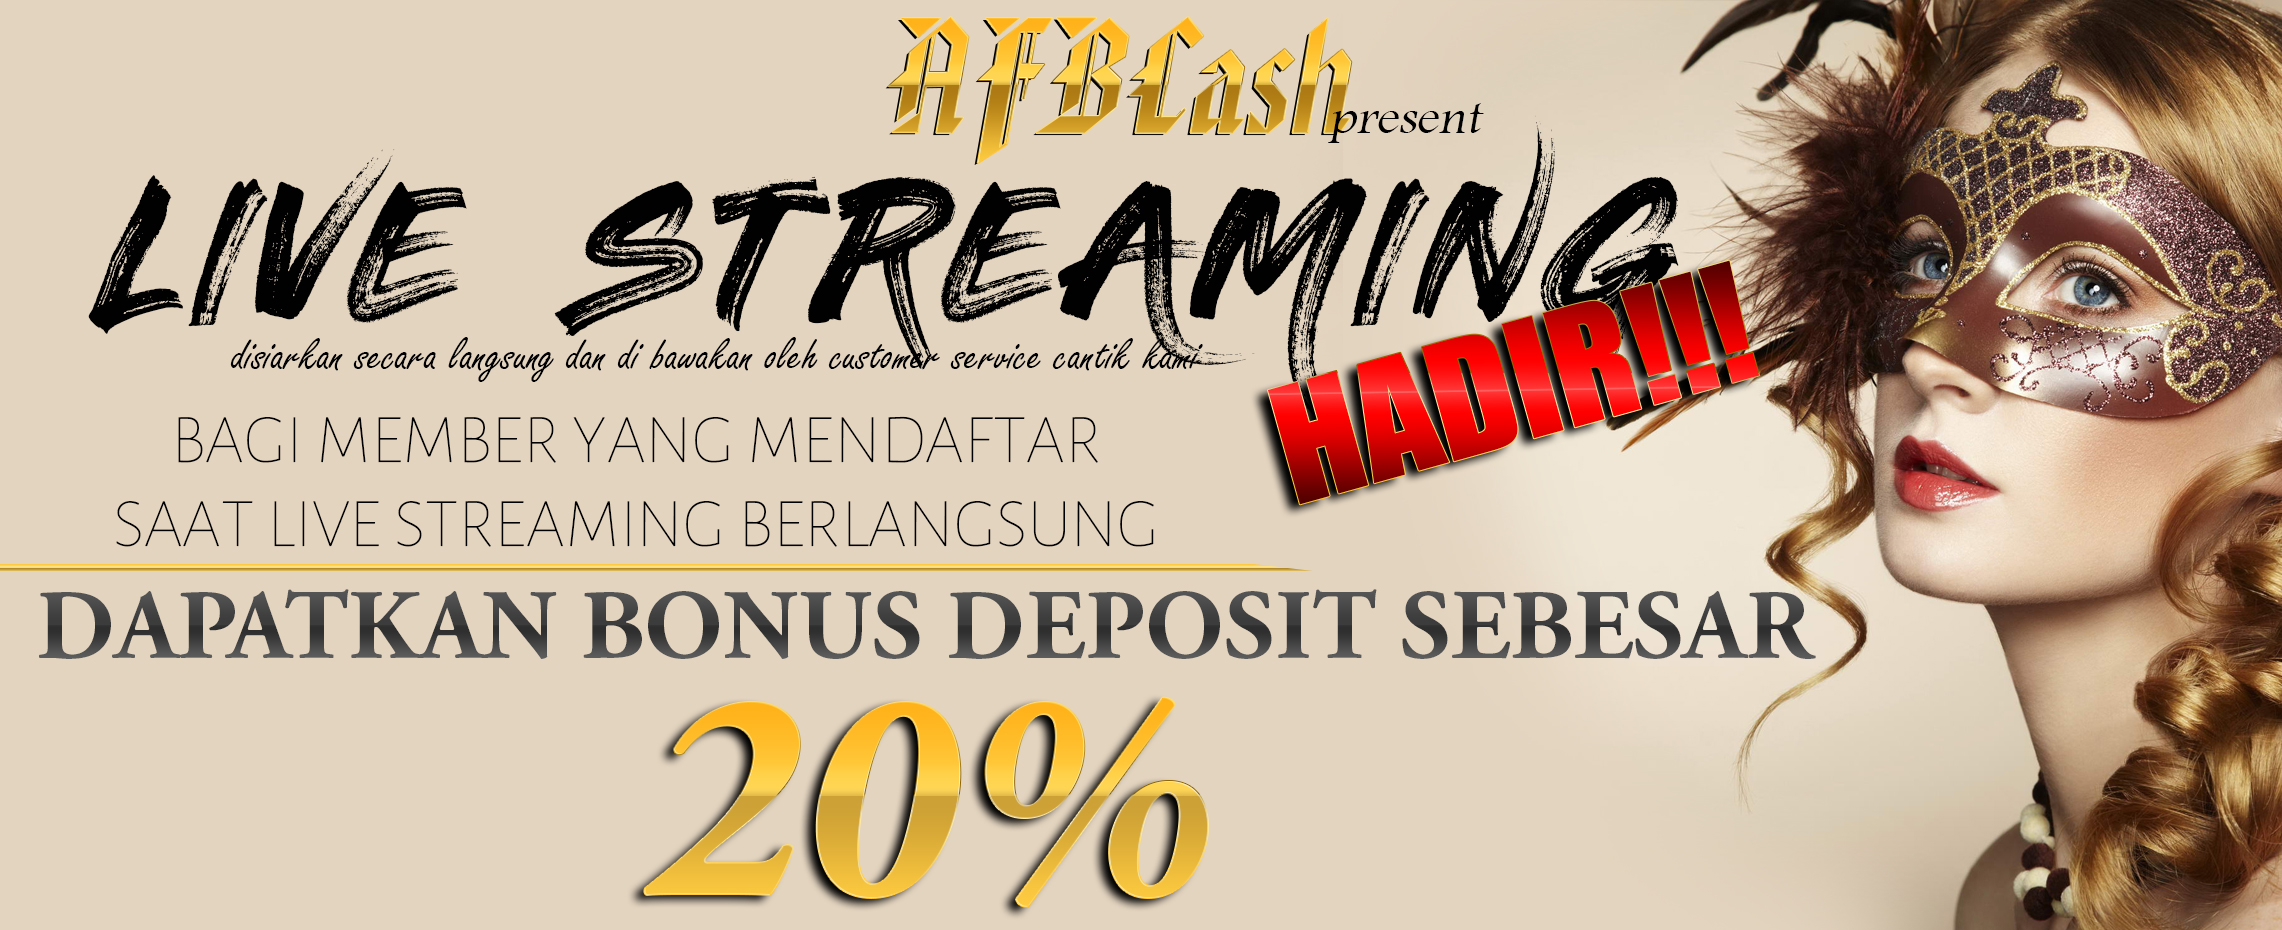 https://image.ibb.co/gaGadA/banner-slider-afbcash-live-streaming.jpg